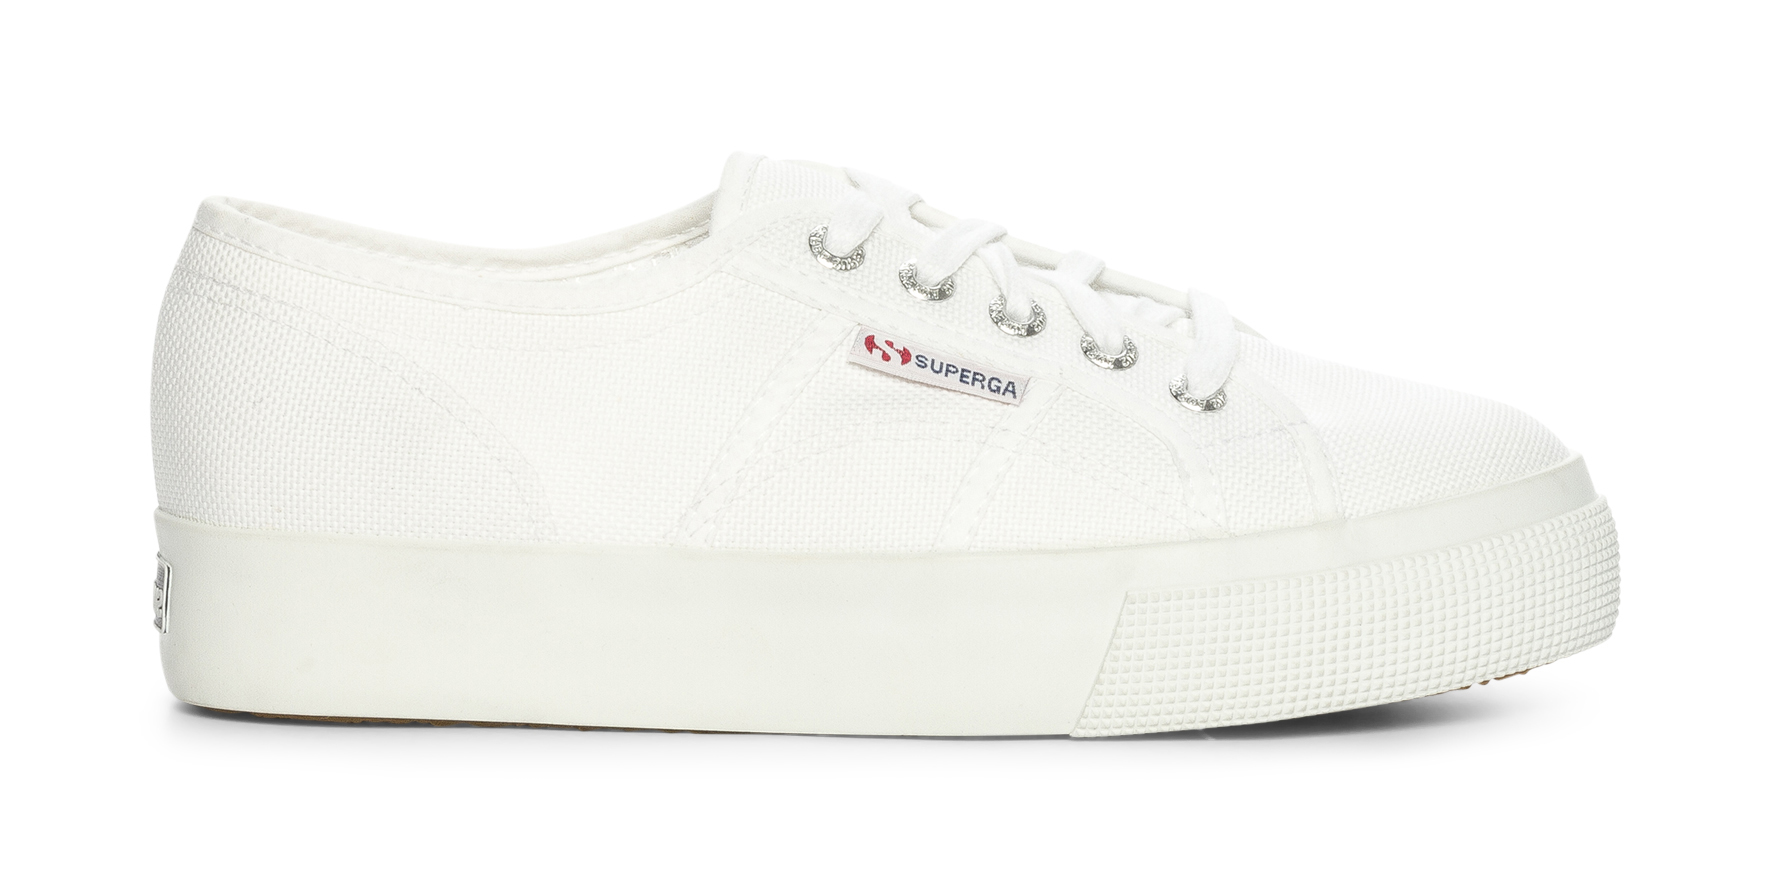 the latest 9ff8c 01963 Superga 2730 Cotu - Vita 314143 feetfirst.se